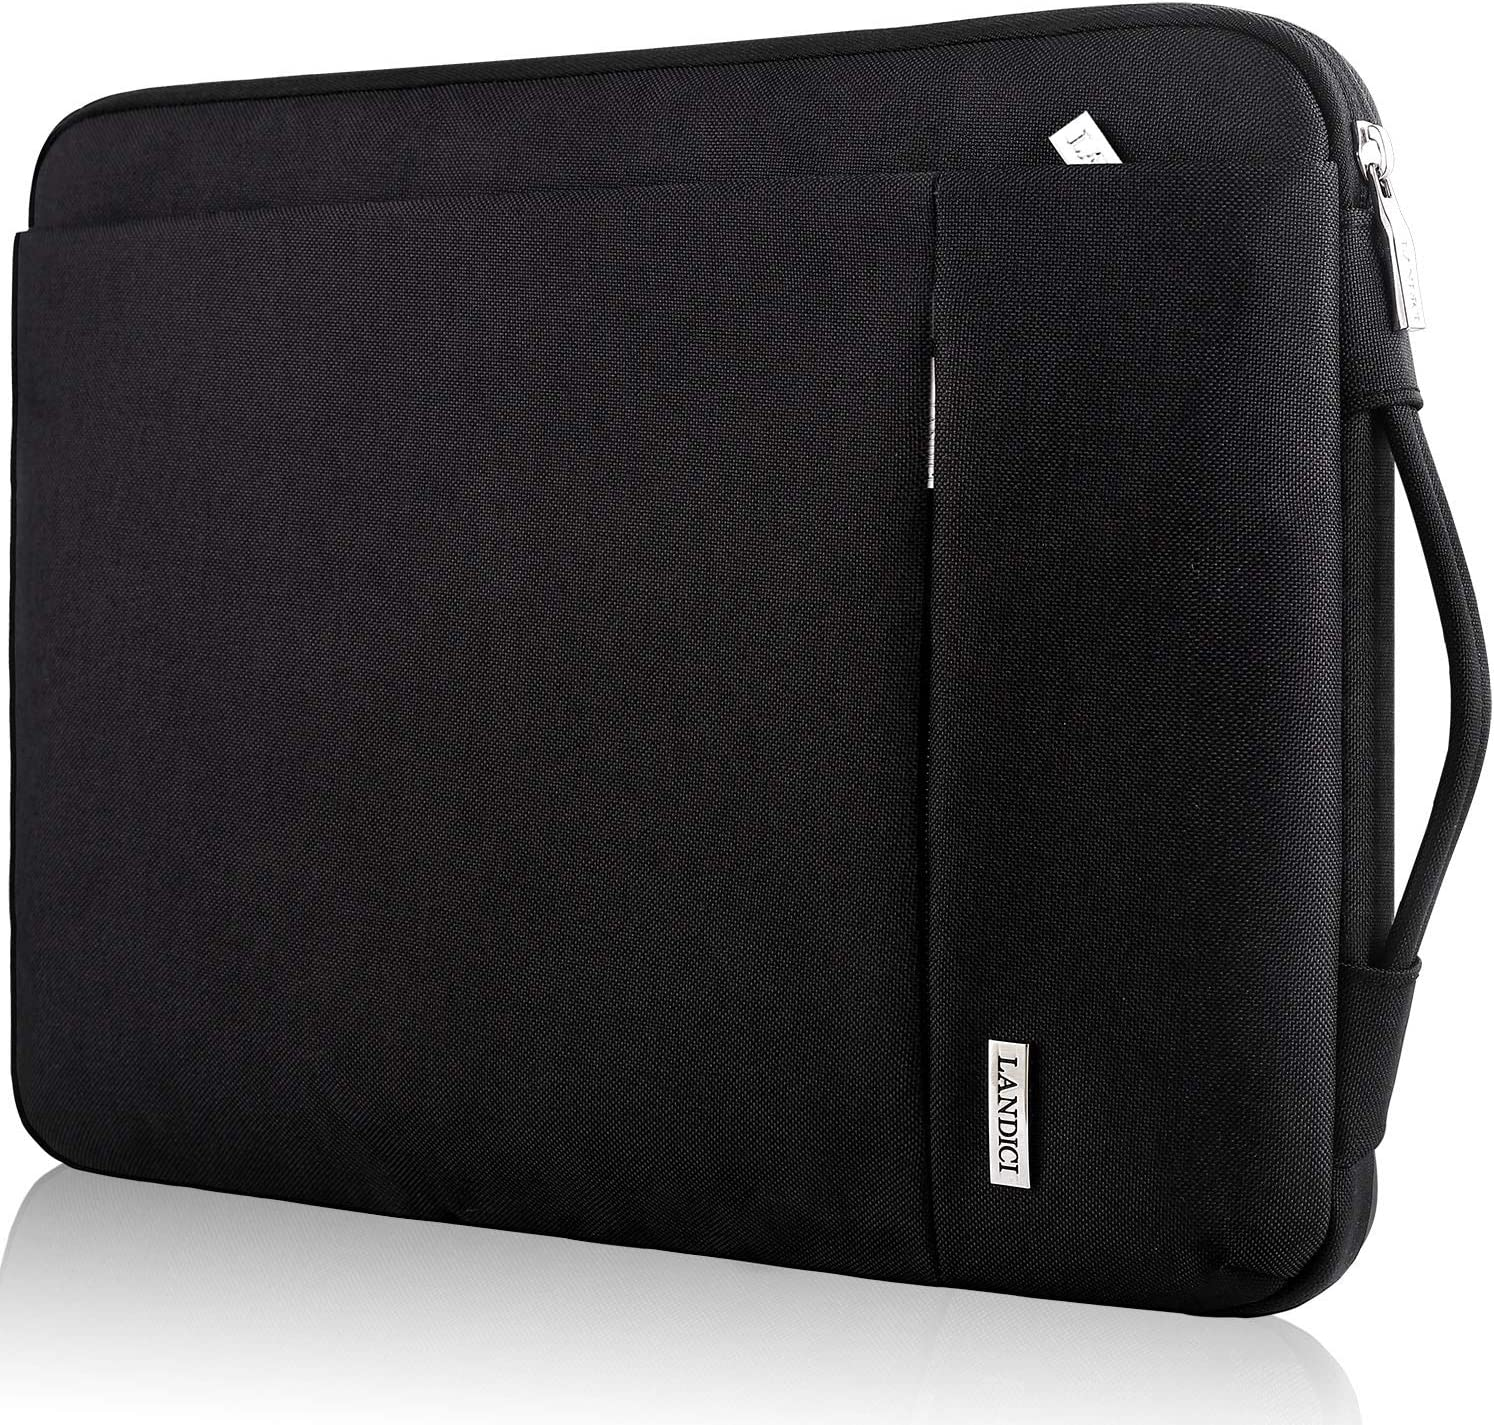 Landici 360 Protective Laptop Case Sleeve 14-15.6 Inch,Waterproof Slim Computer Bag Cover Compatible for 16